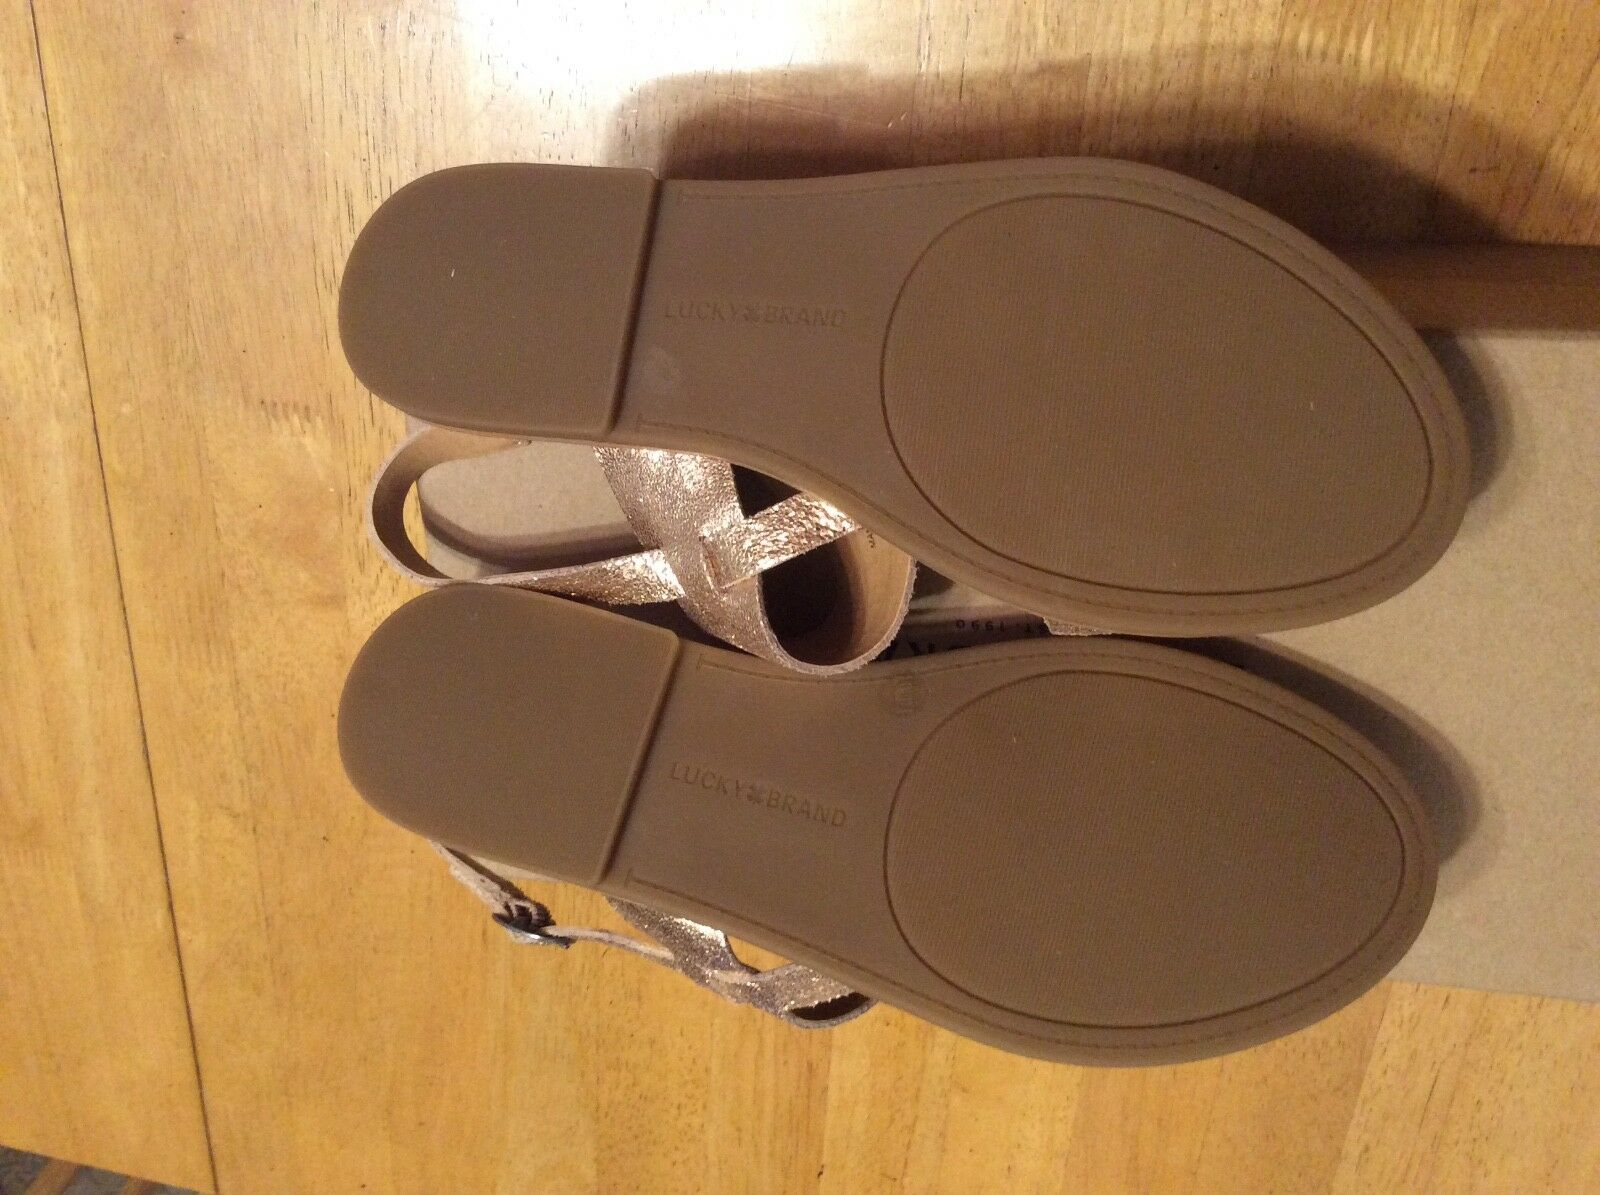 New LUCKY BRAND Avenu Blush Rose Gold 7.5 Crinkle LEATHER Sandales Schuhe 7.5 Gold or 7 1/2 e4c02d